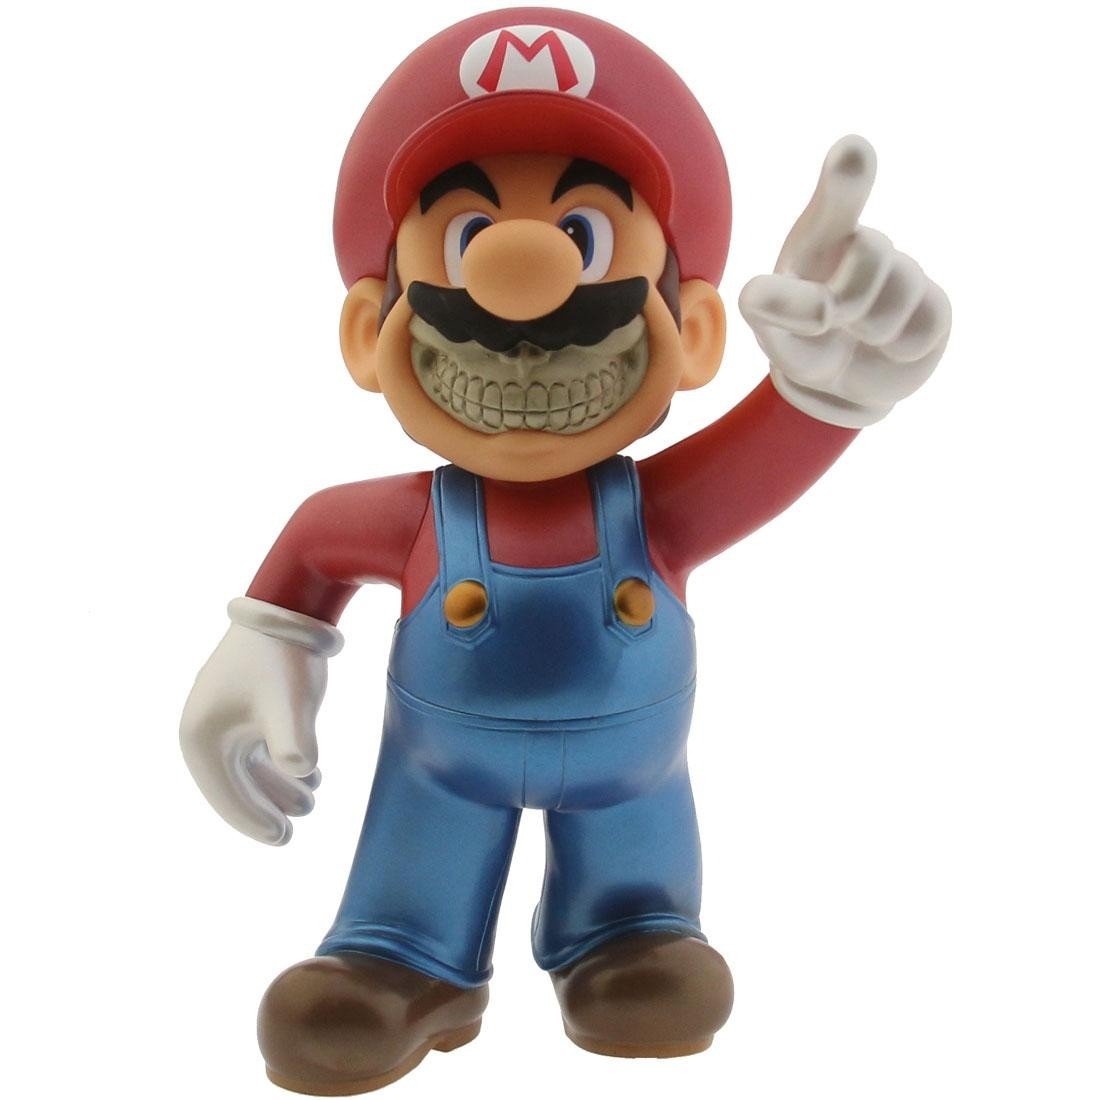 MINDstyle Collectormates Metallic Mario Grin by Ron English x Mario Maurer (red)